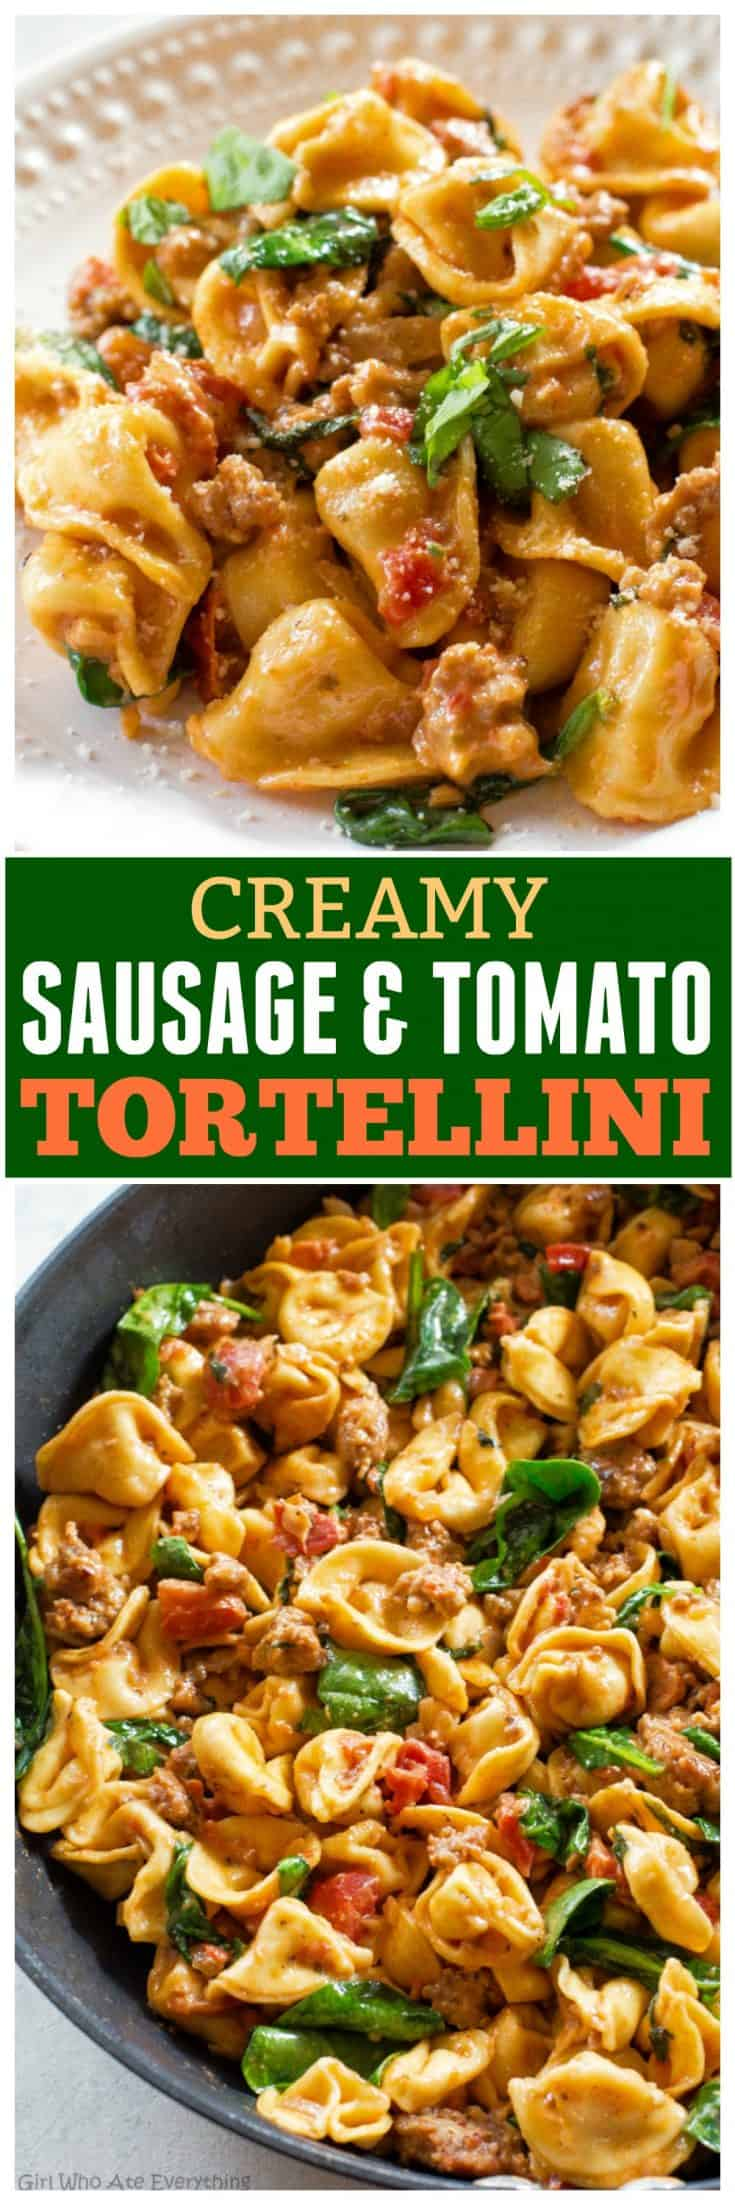 This Creamy Sausage and Tomato Tortellini is a delicious Italian dinner ready in under 15 minutes! #easy #dinner #recipe #onepot #onepan